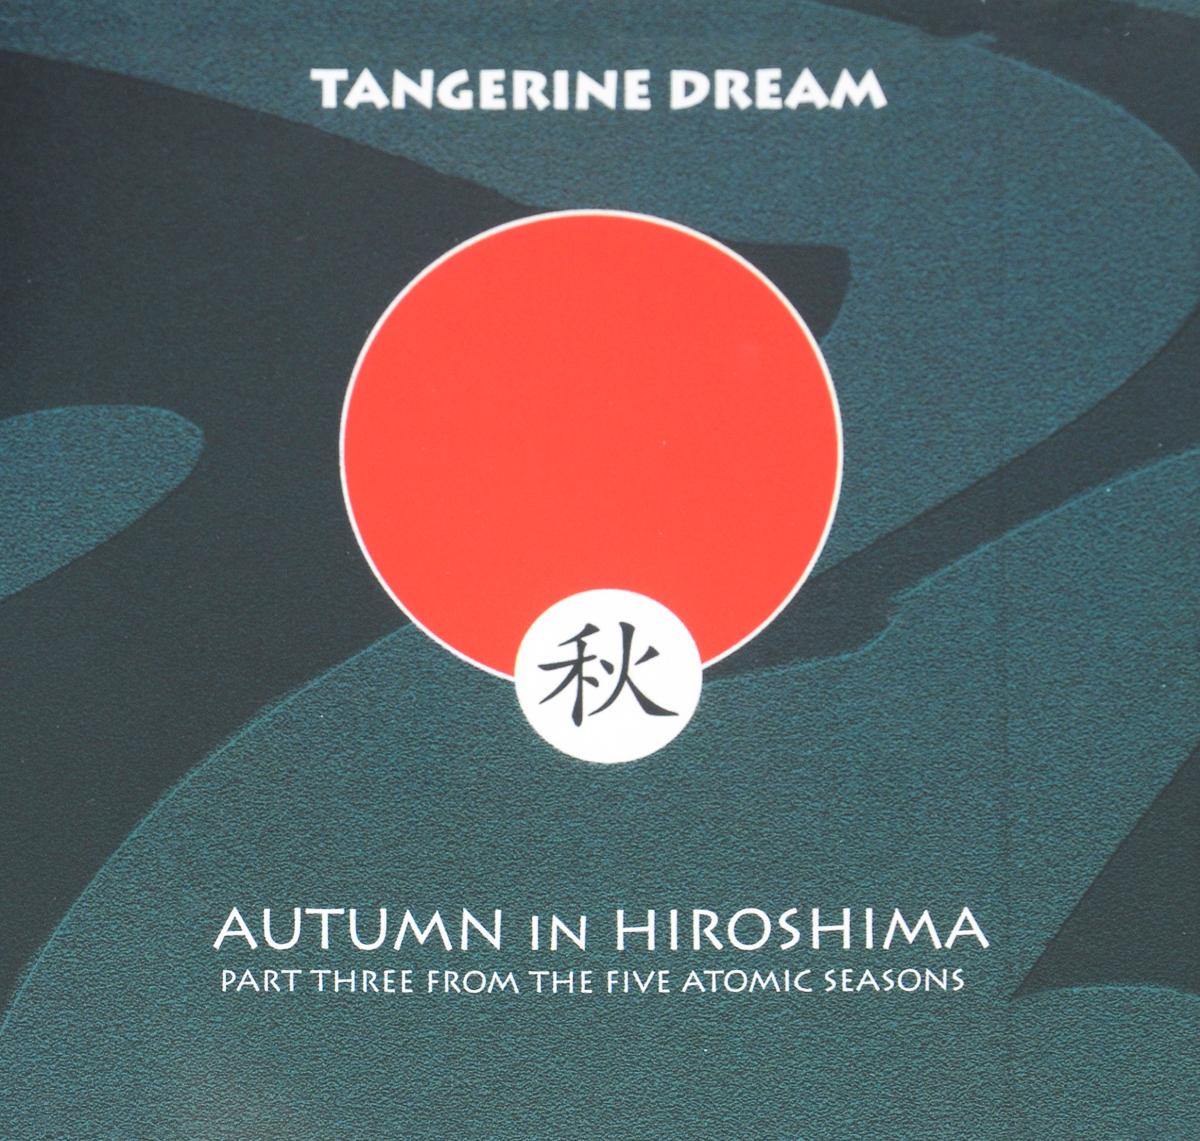 Пол Хаслингер Tangerine Dream. Autumn In Hiroshima tangerine dream tangerine dream thief live